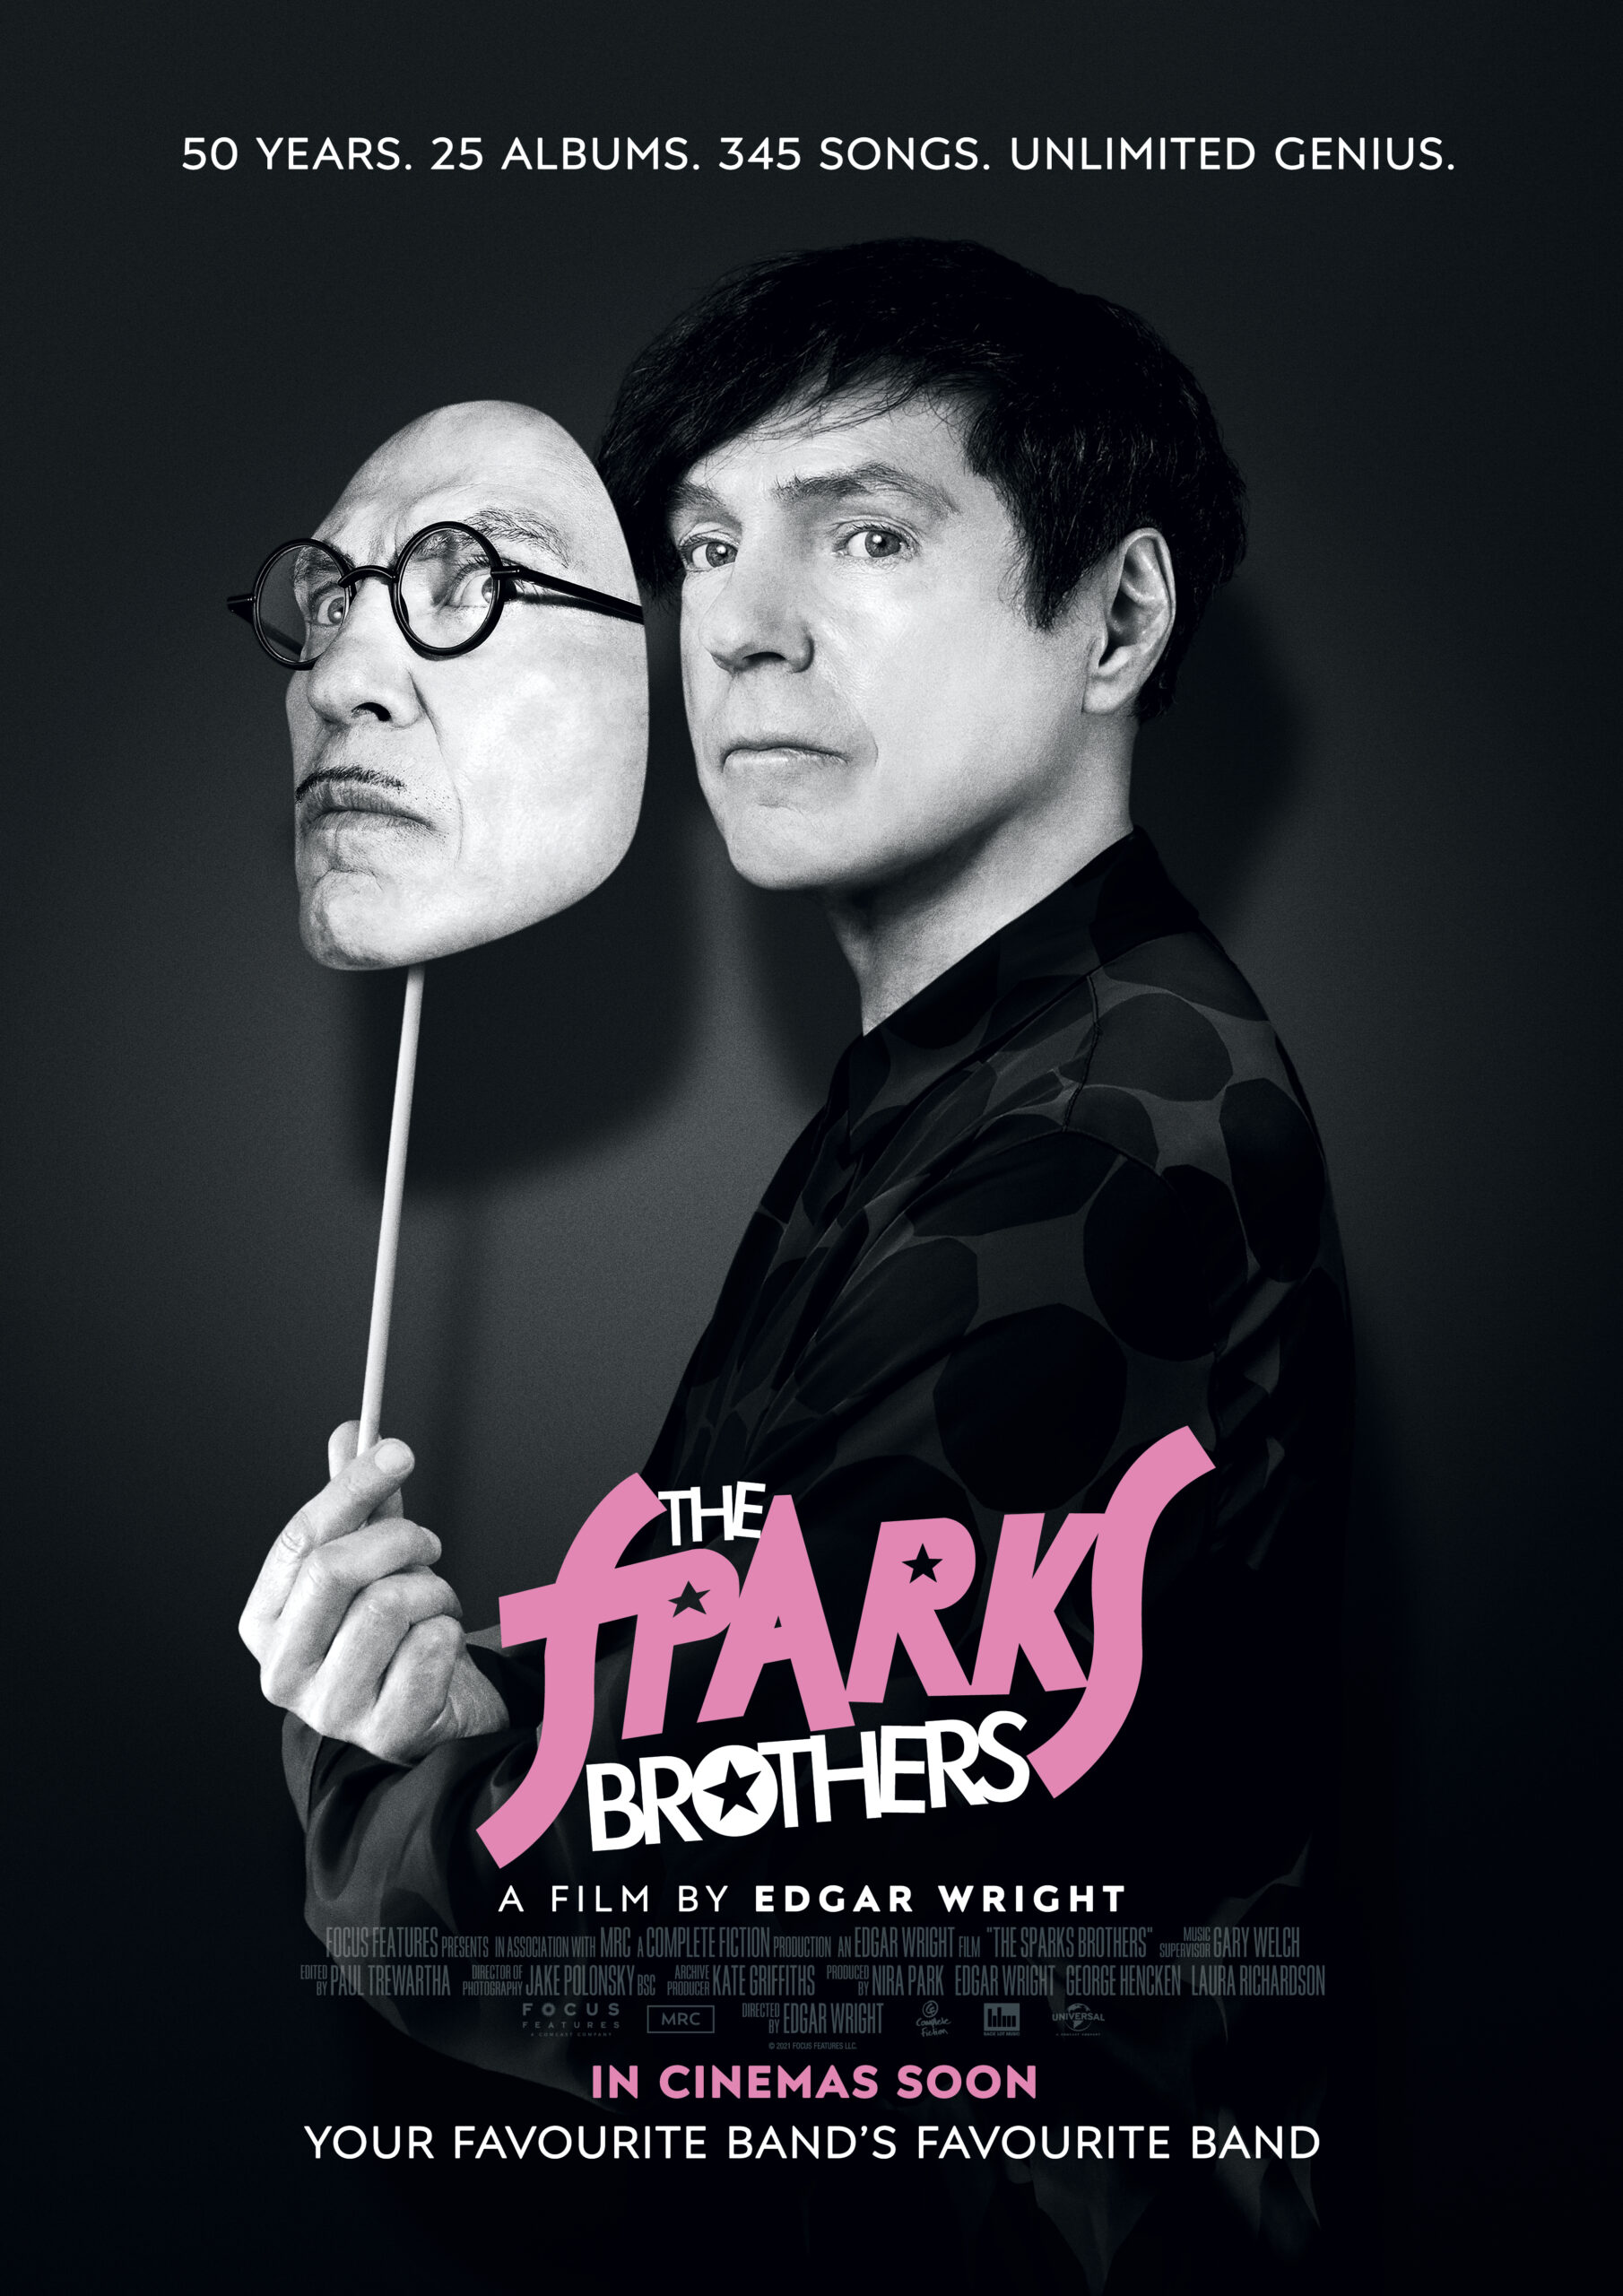 You are currently viewing The Sparks Brothers